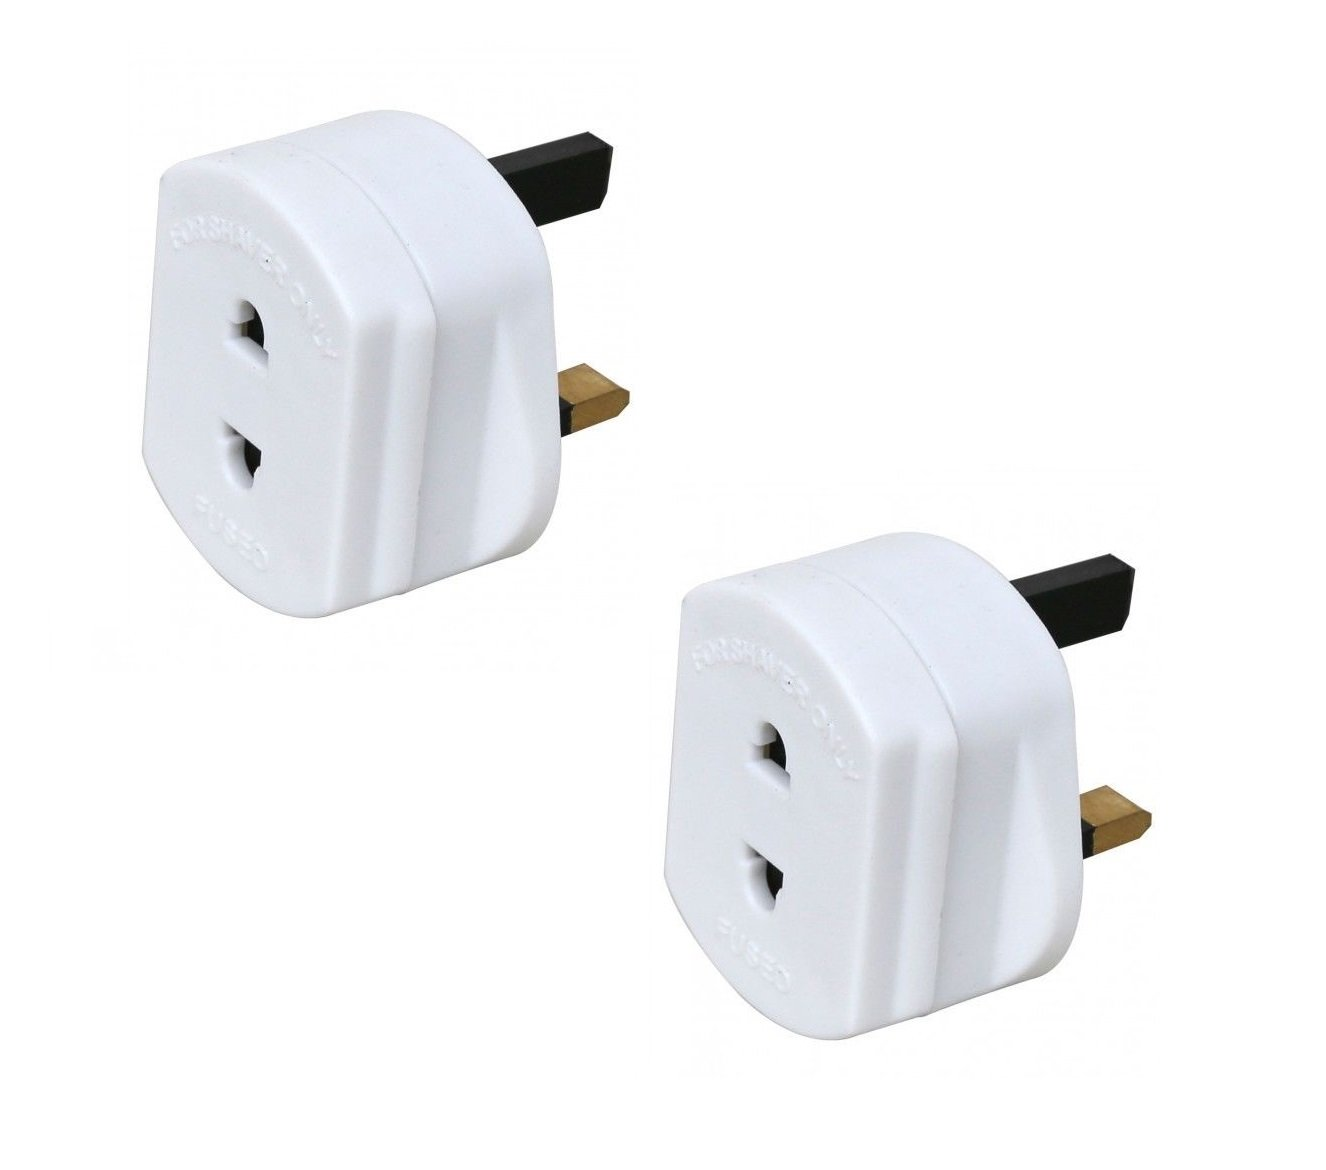 Invero® 2x Pack of Shaver Adaptor UK 3 Pin to 2 Pin Socket Plug Fuse ideal for Electric Toothbrush, Bathroom Shaving and more White